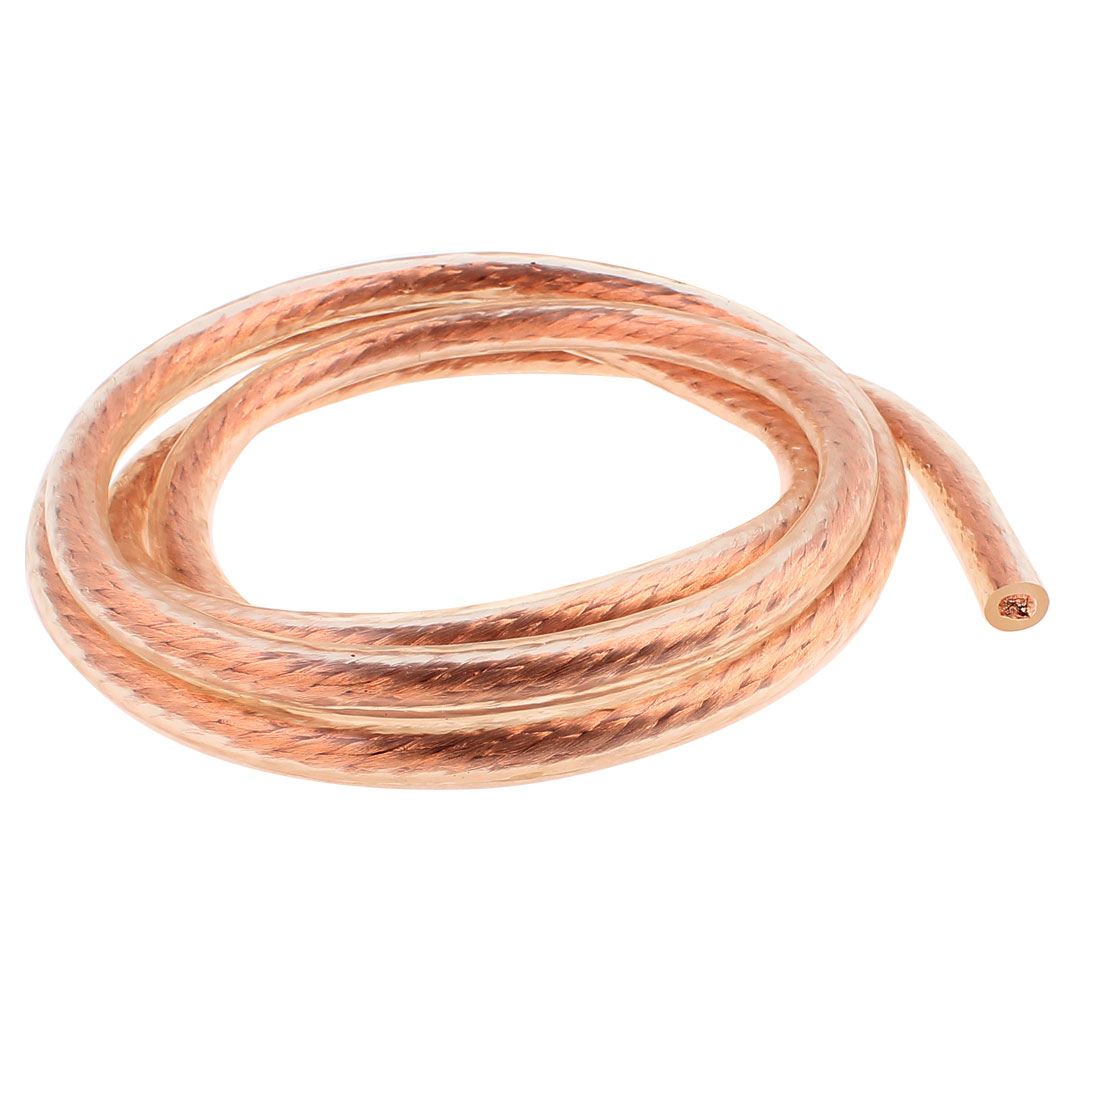 25 Square Millimeter Thickness 2M Length Electircal Braided Copper Wire